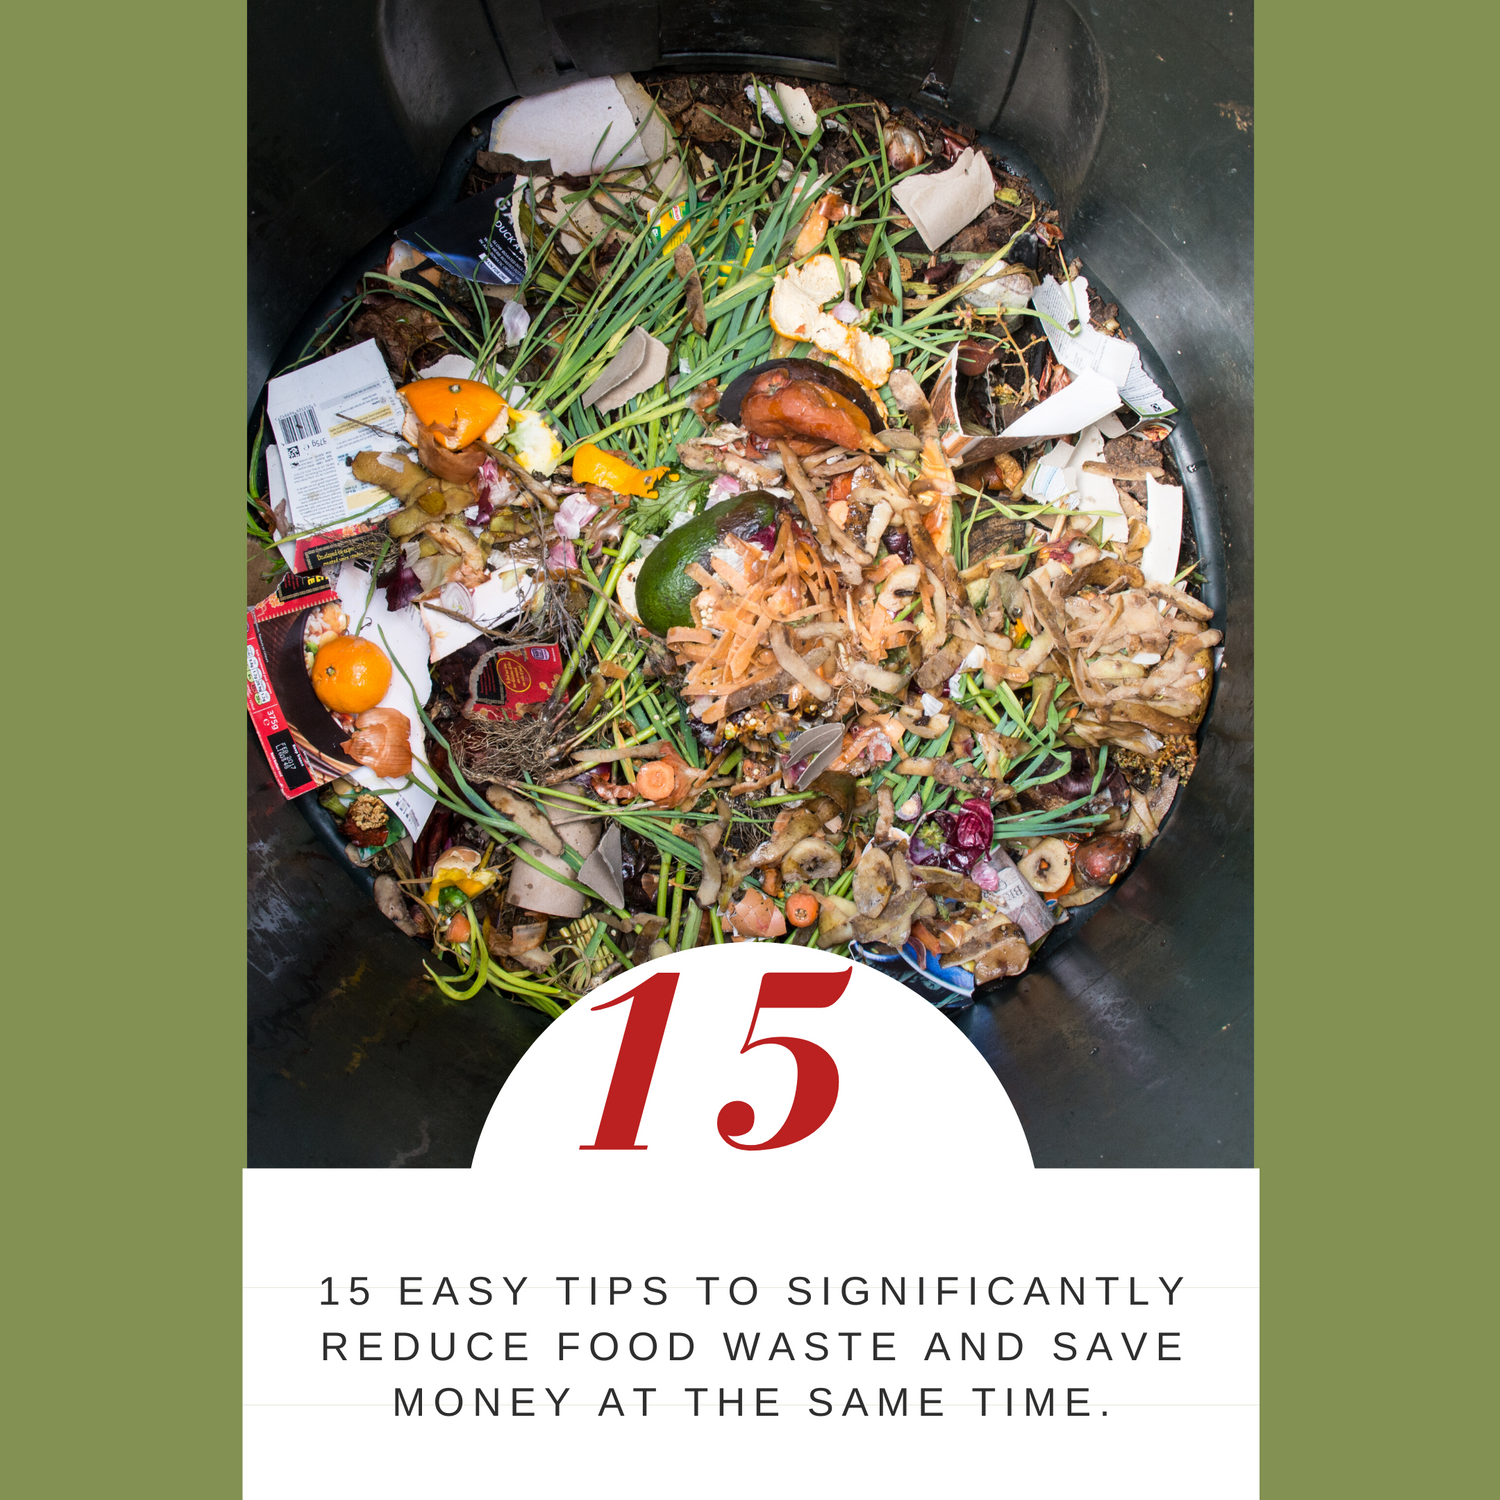 15 easy tips to significantly reduce food waste and save money at the same time